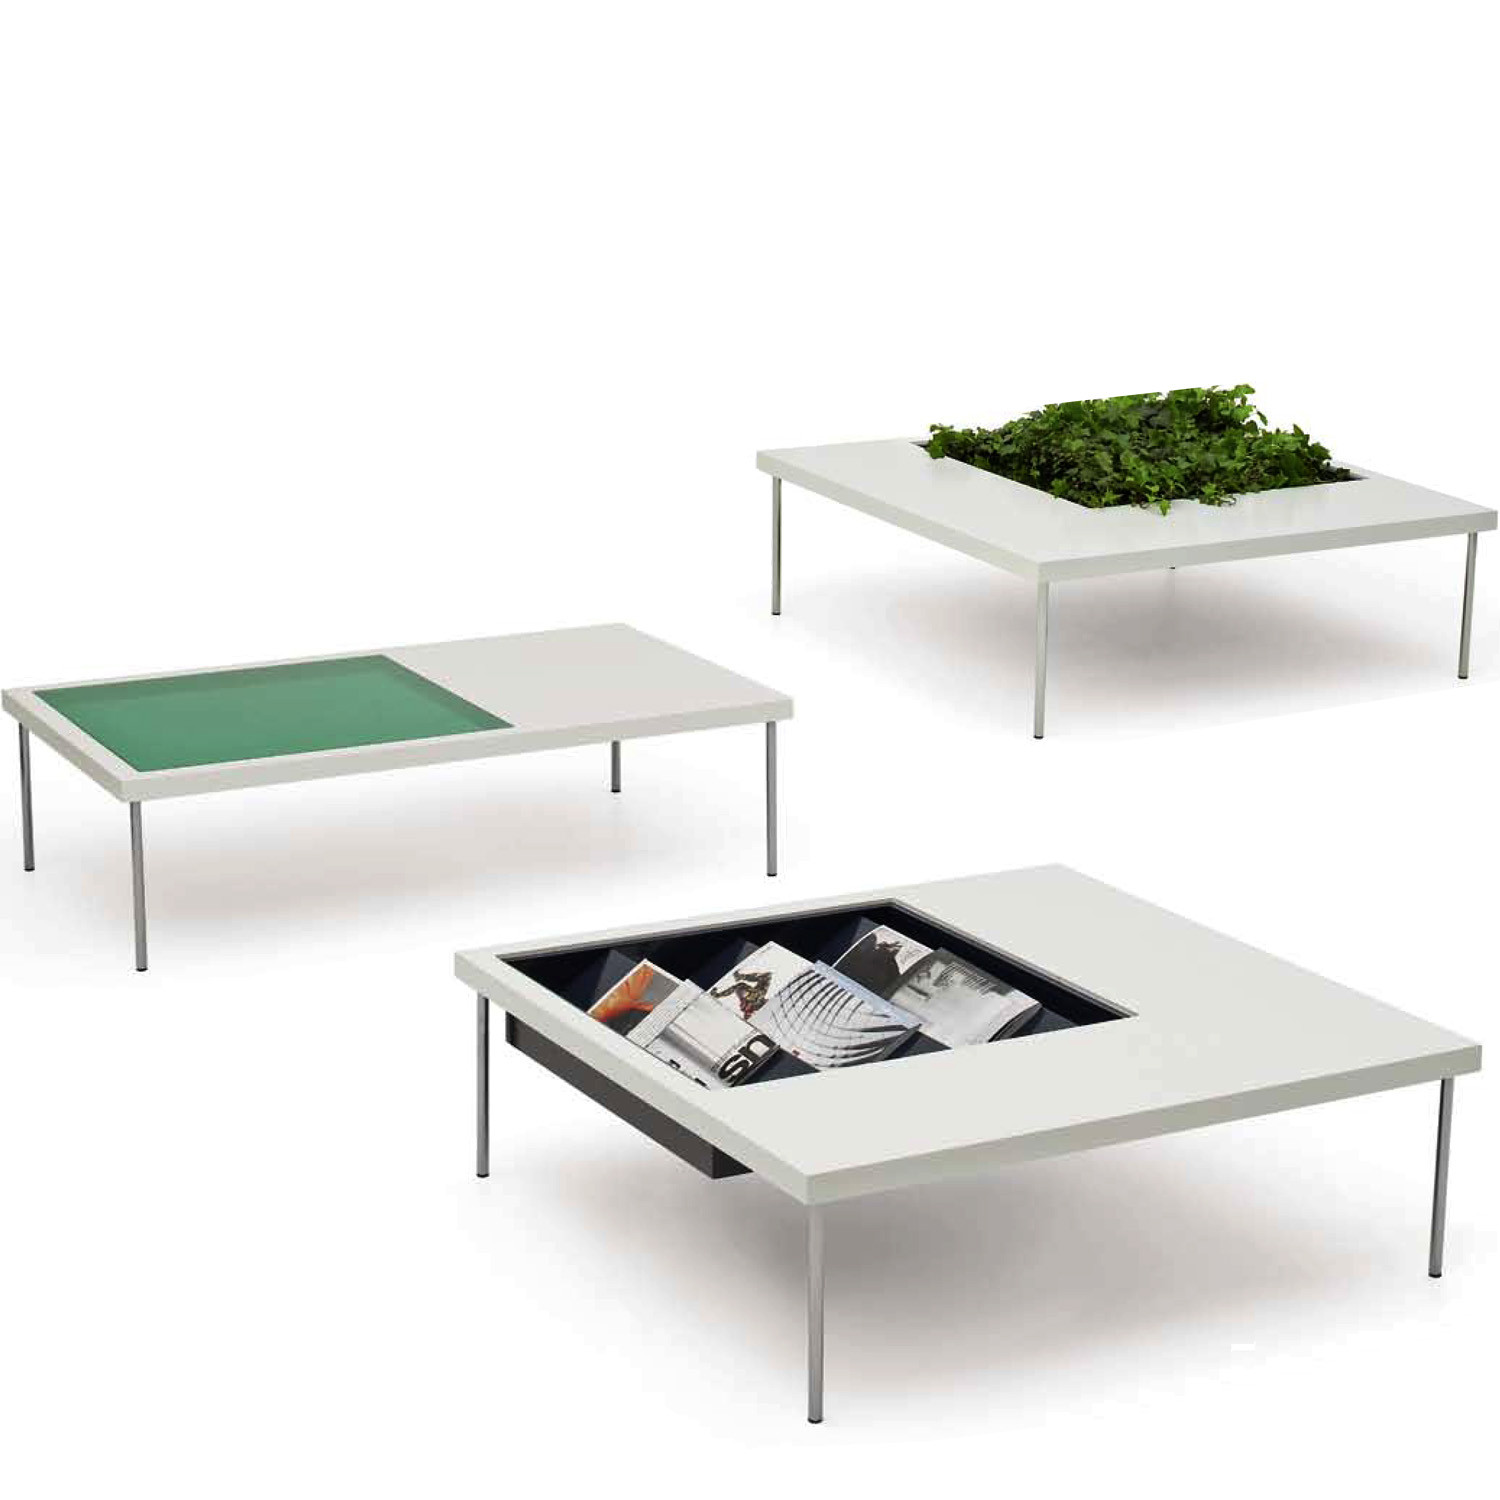 Window Magazine and Planter Coffee Tables